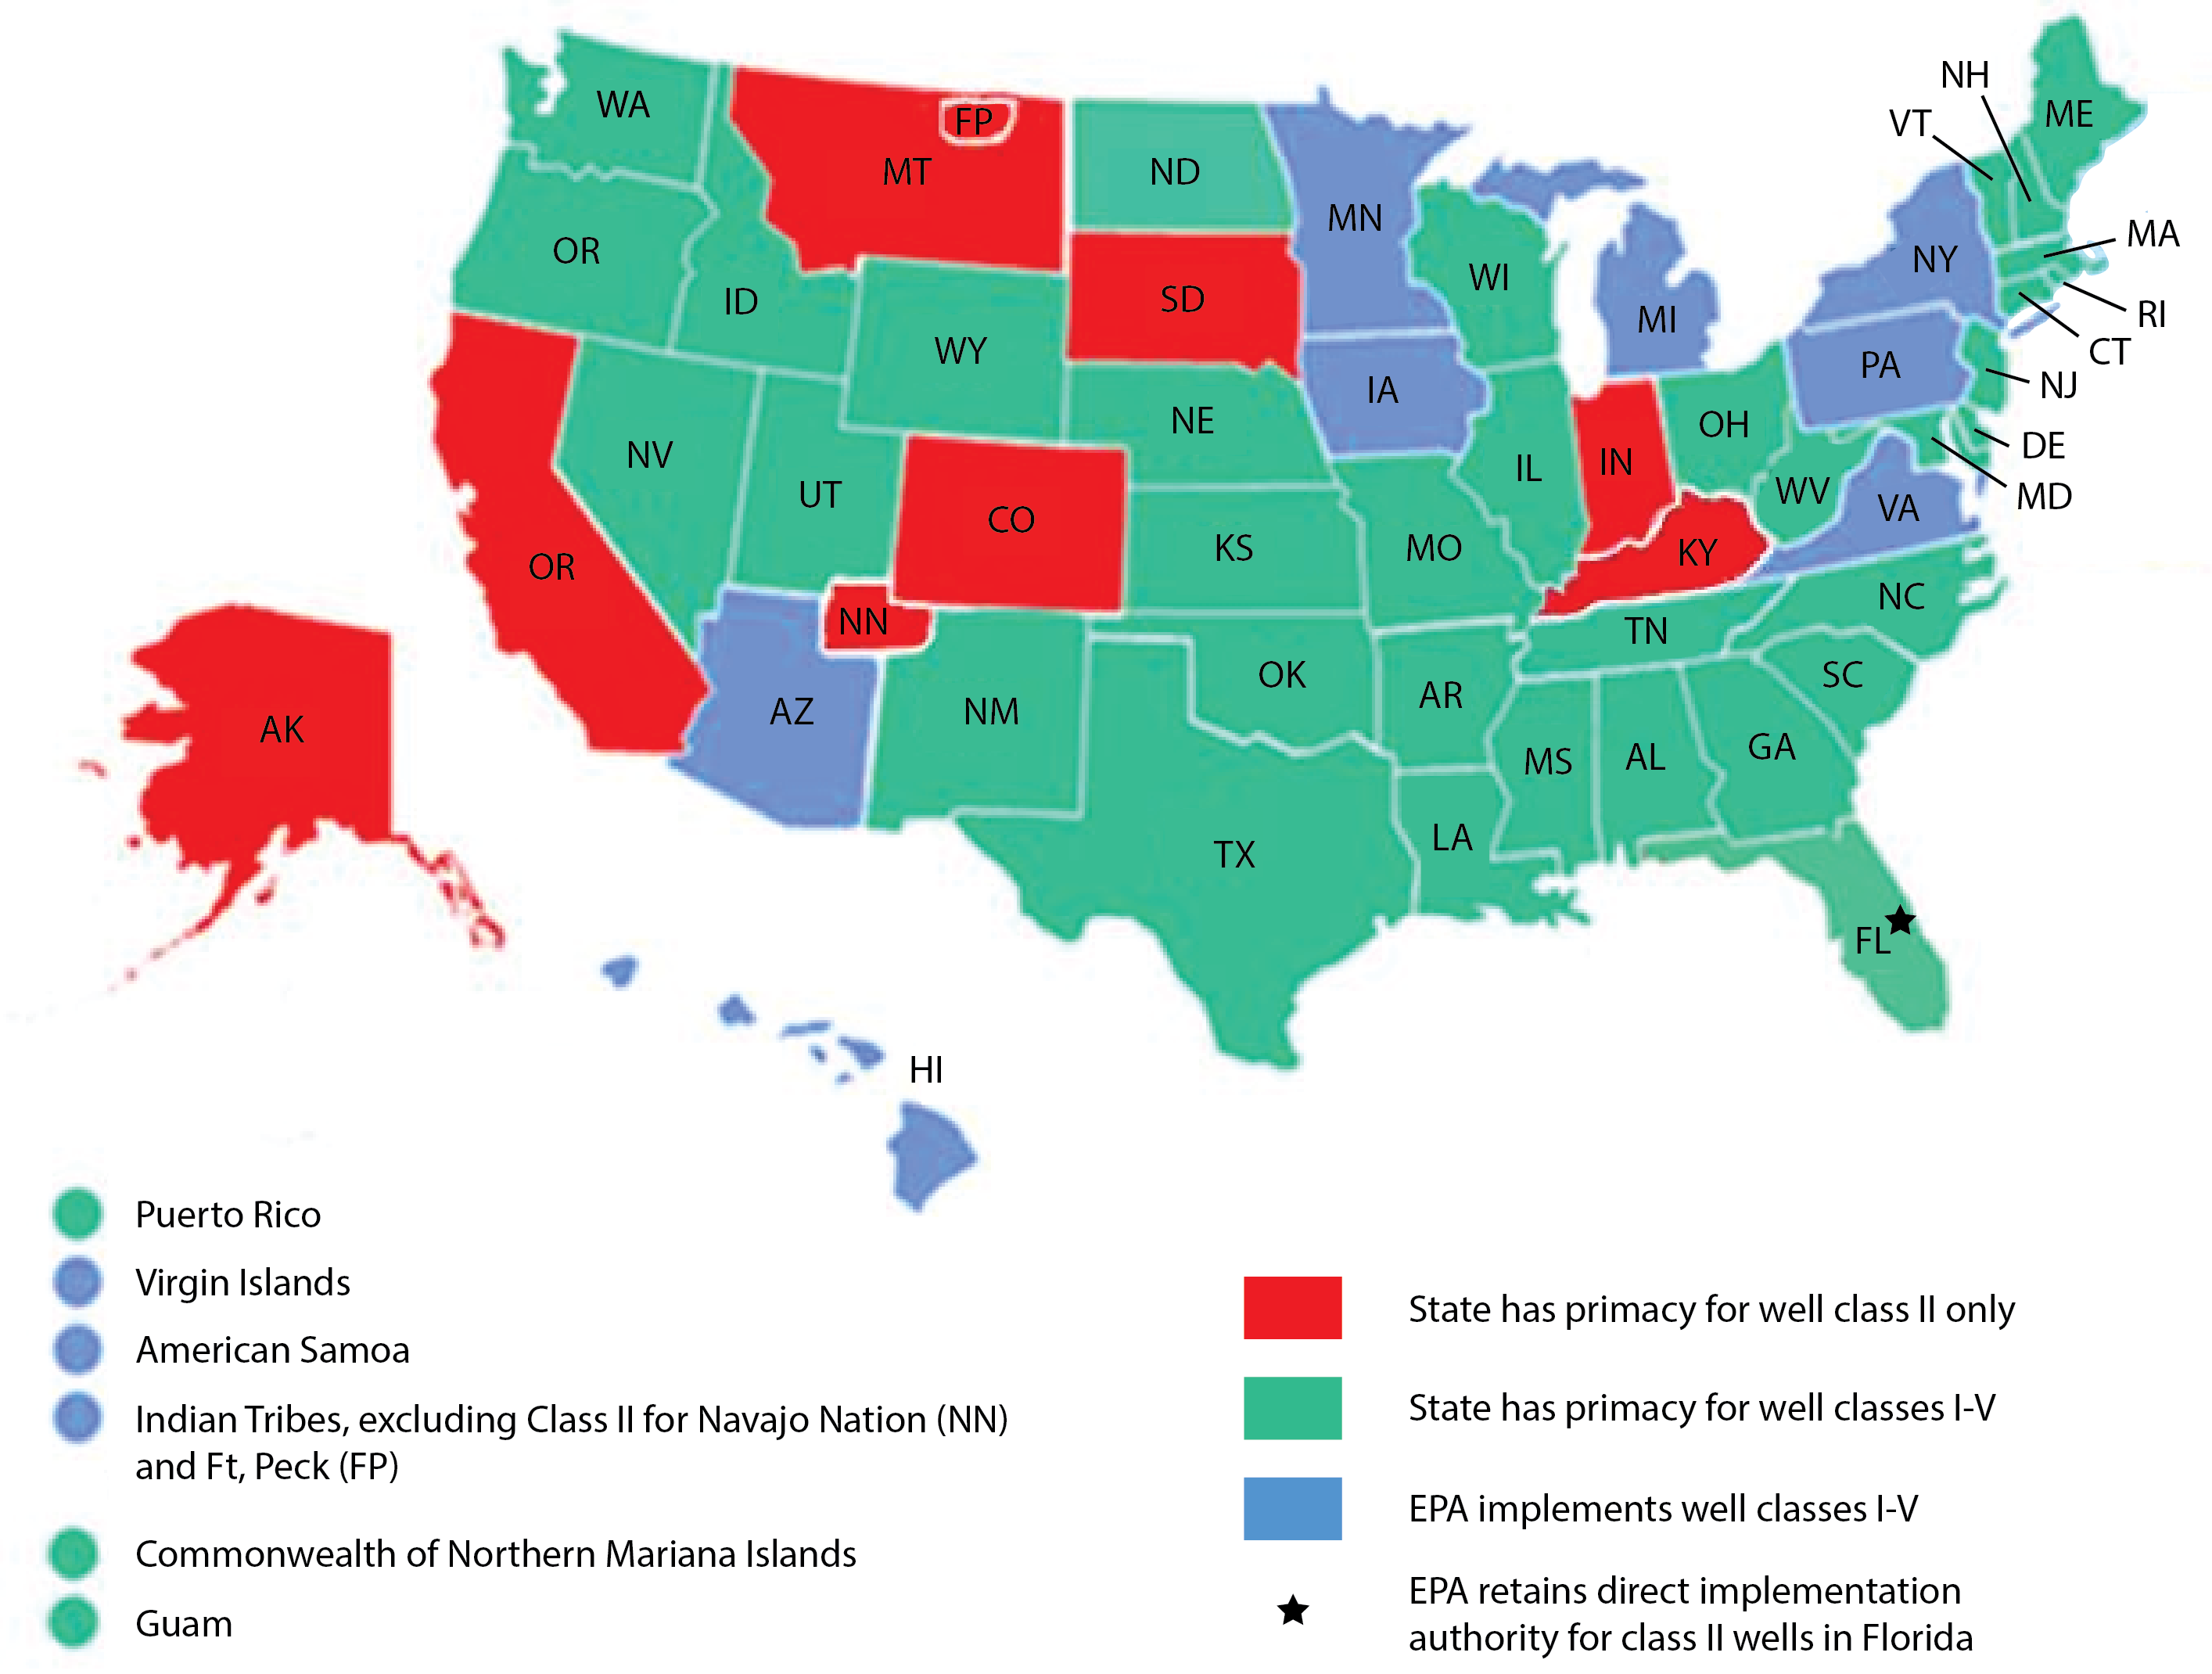 Map Of States Territories And Tribes With Primacy Over Their Underground Injection Control Programs